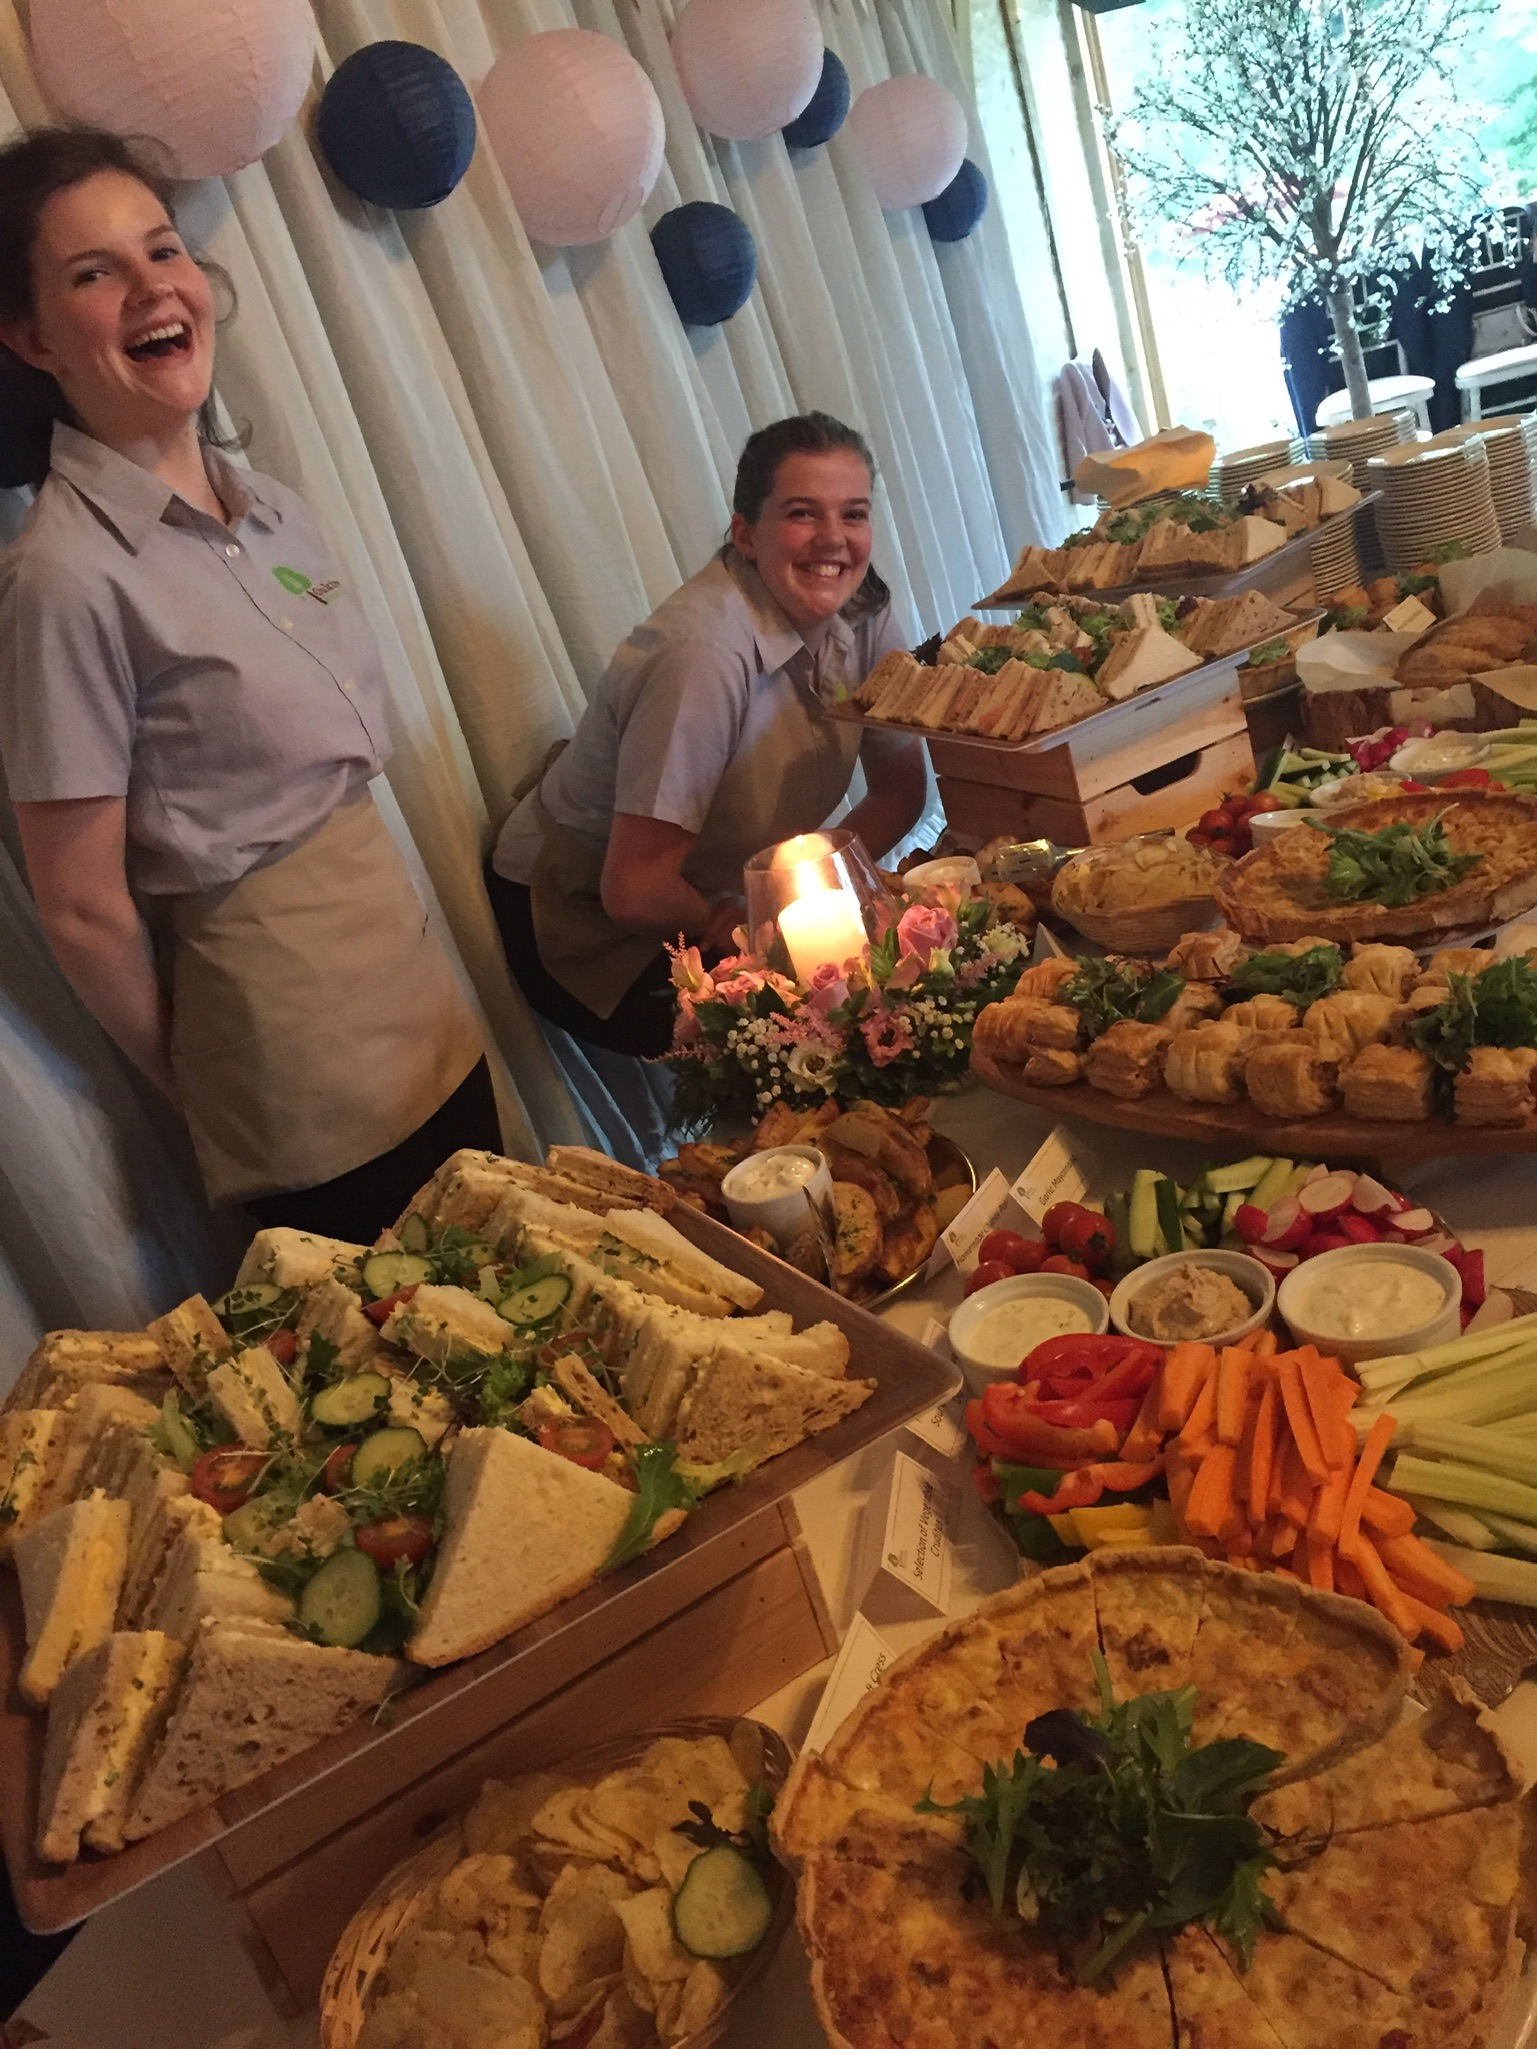 Cornwall wedding caterers, Devon outside caterers